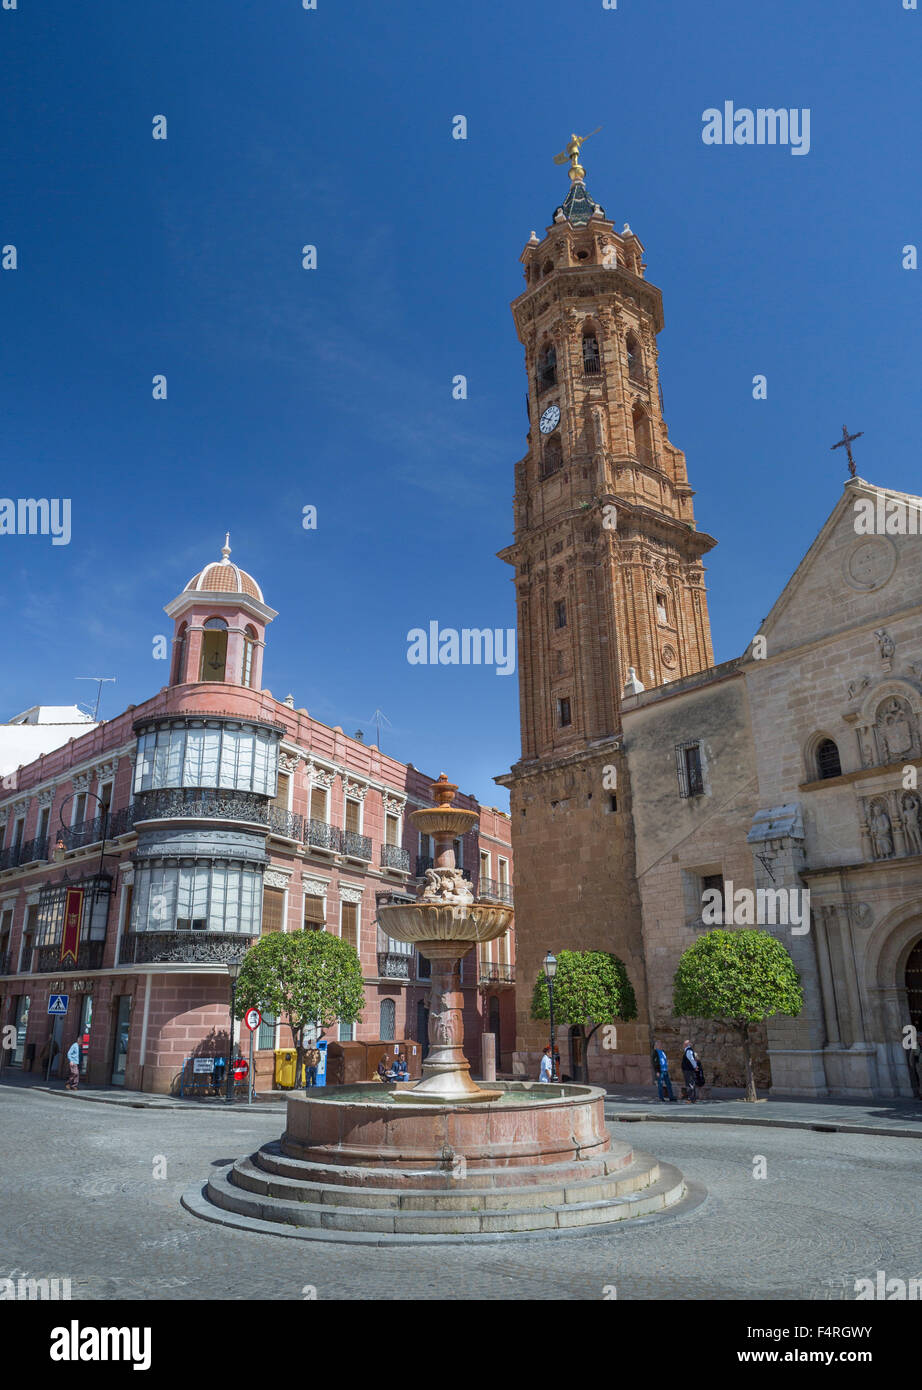 Andalusia, Antequera, town, Malaga, Spain, Europe, Spring, architecture, belfry, colourful, downtown, fountain, - Stock Image